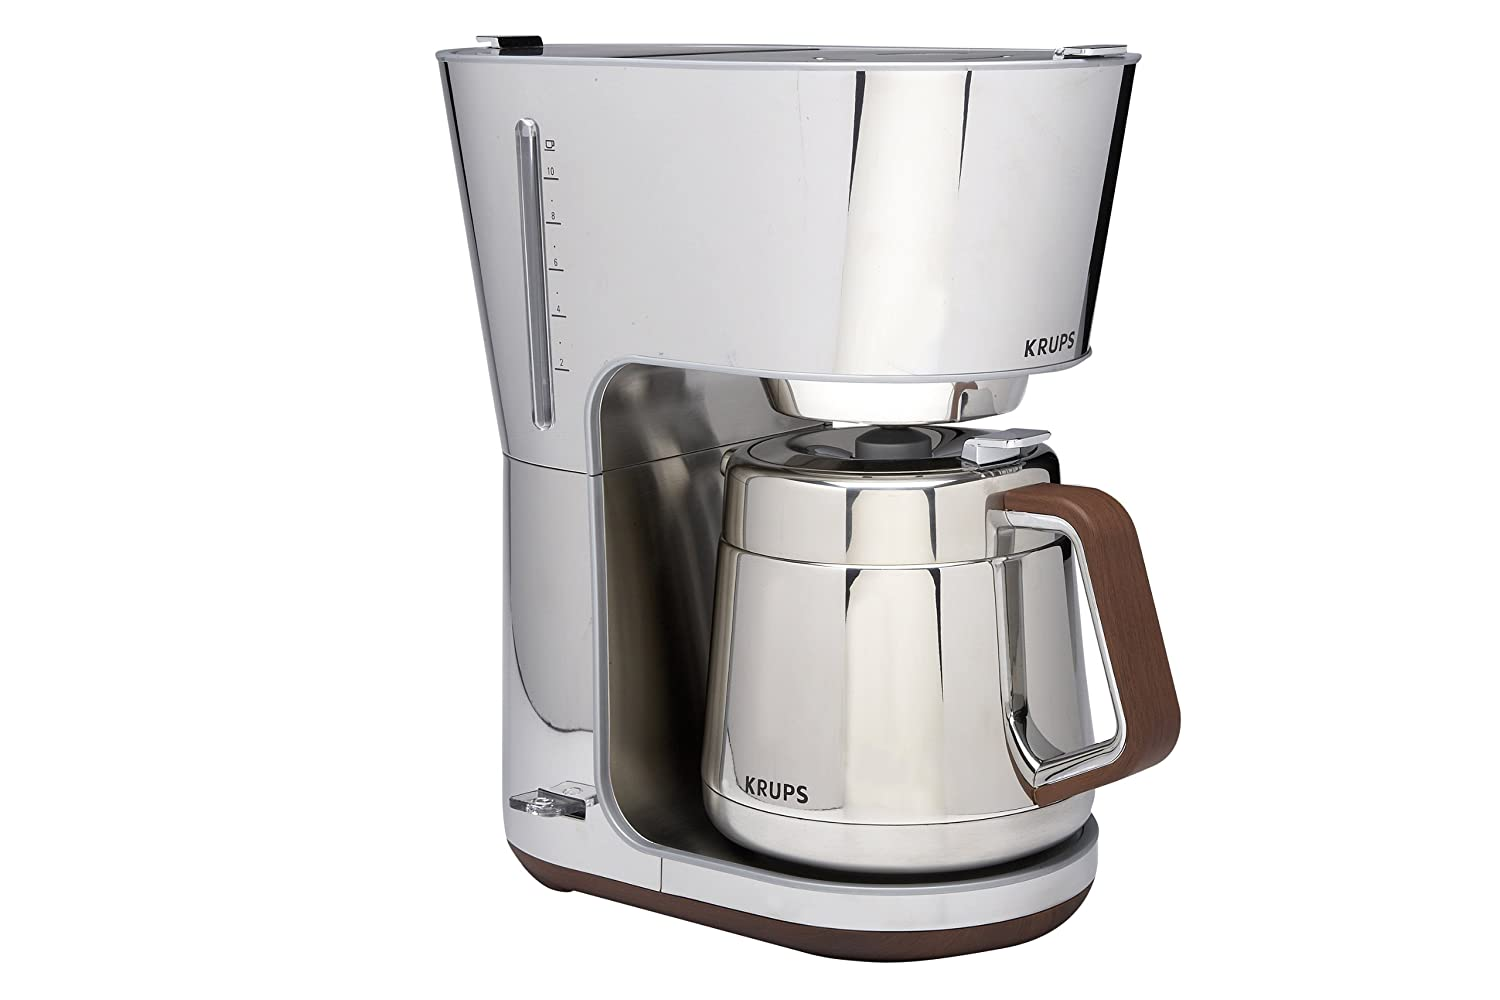 Coffee Maker Stainless Carafe : KRUPS KT600 SILVER ART COLLECTION THERMAL CARAFE COFFEE MAKER CHROME STEEL NEW!! eBay